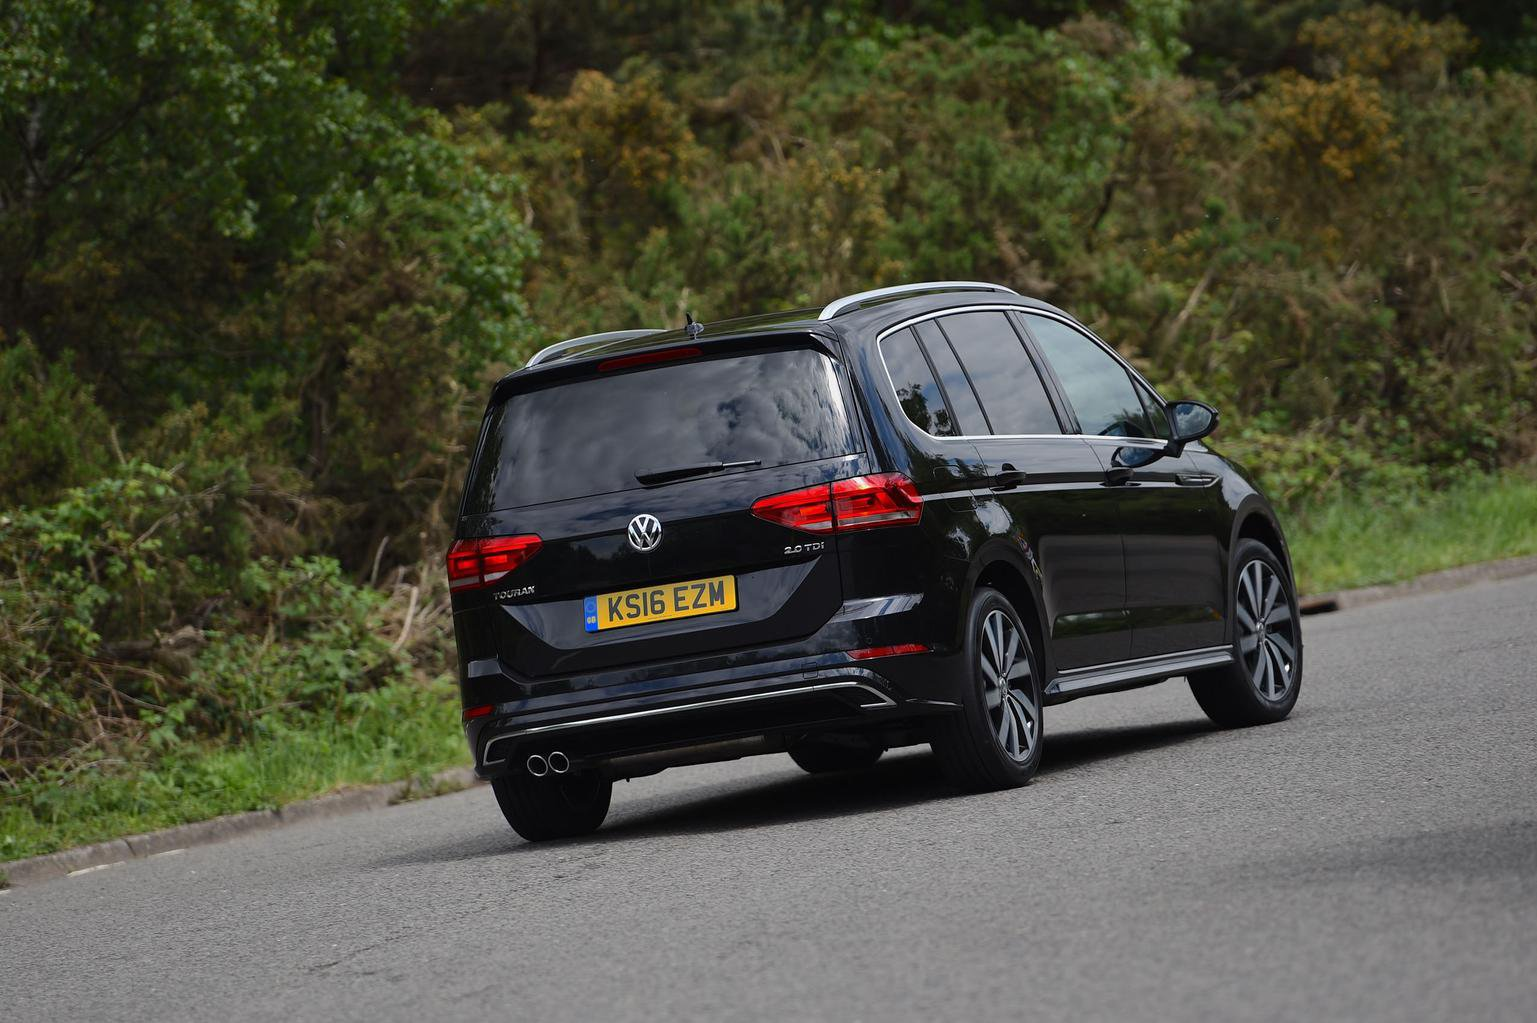 2016 Volkswagen Touran 2.0 TDI R-Line review